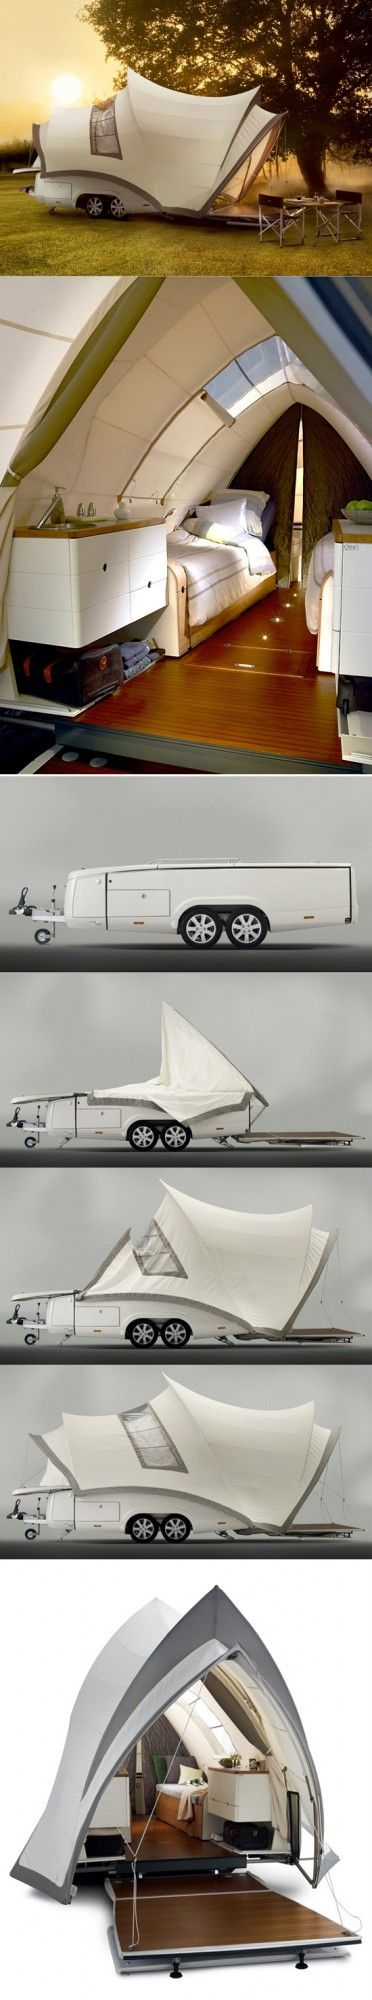 The Opera Pop Up Camper: Lightweight Expanding Travel Trailer